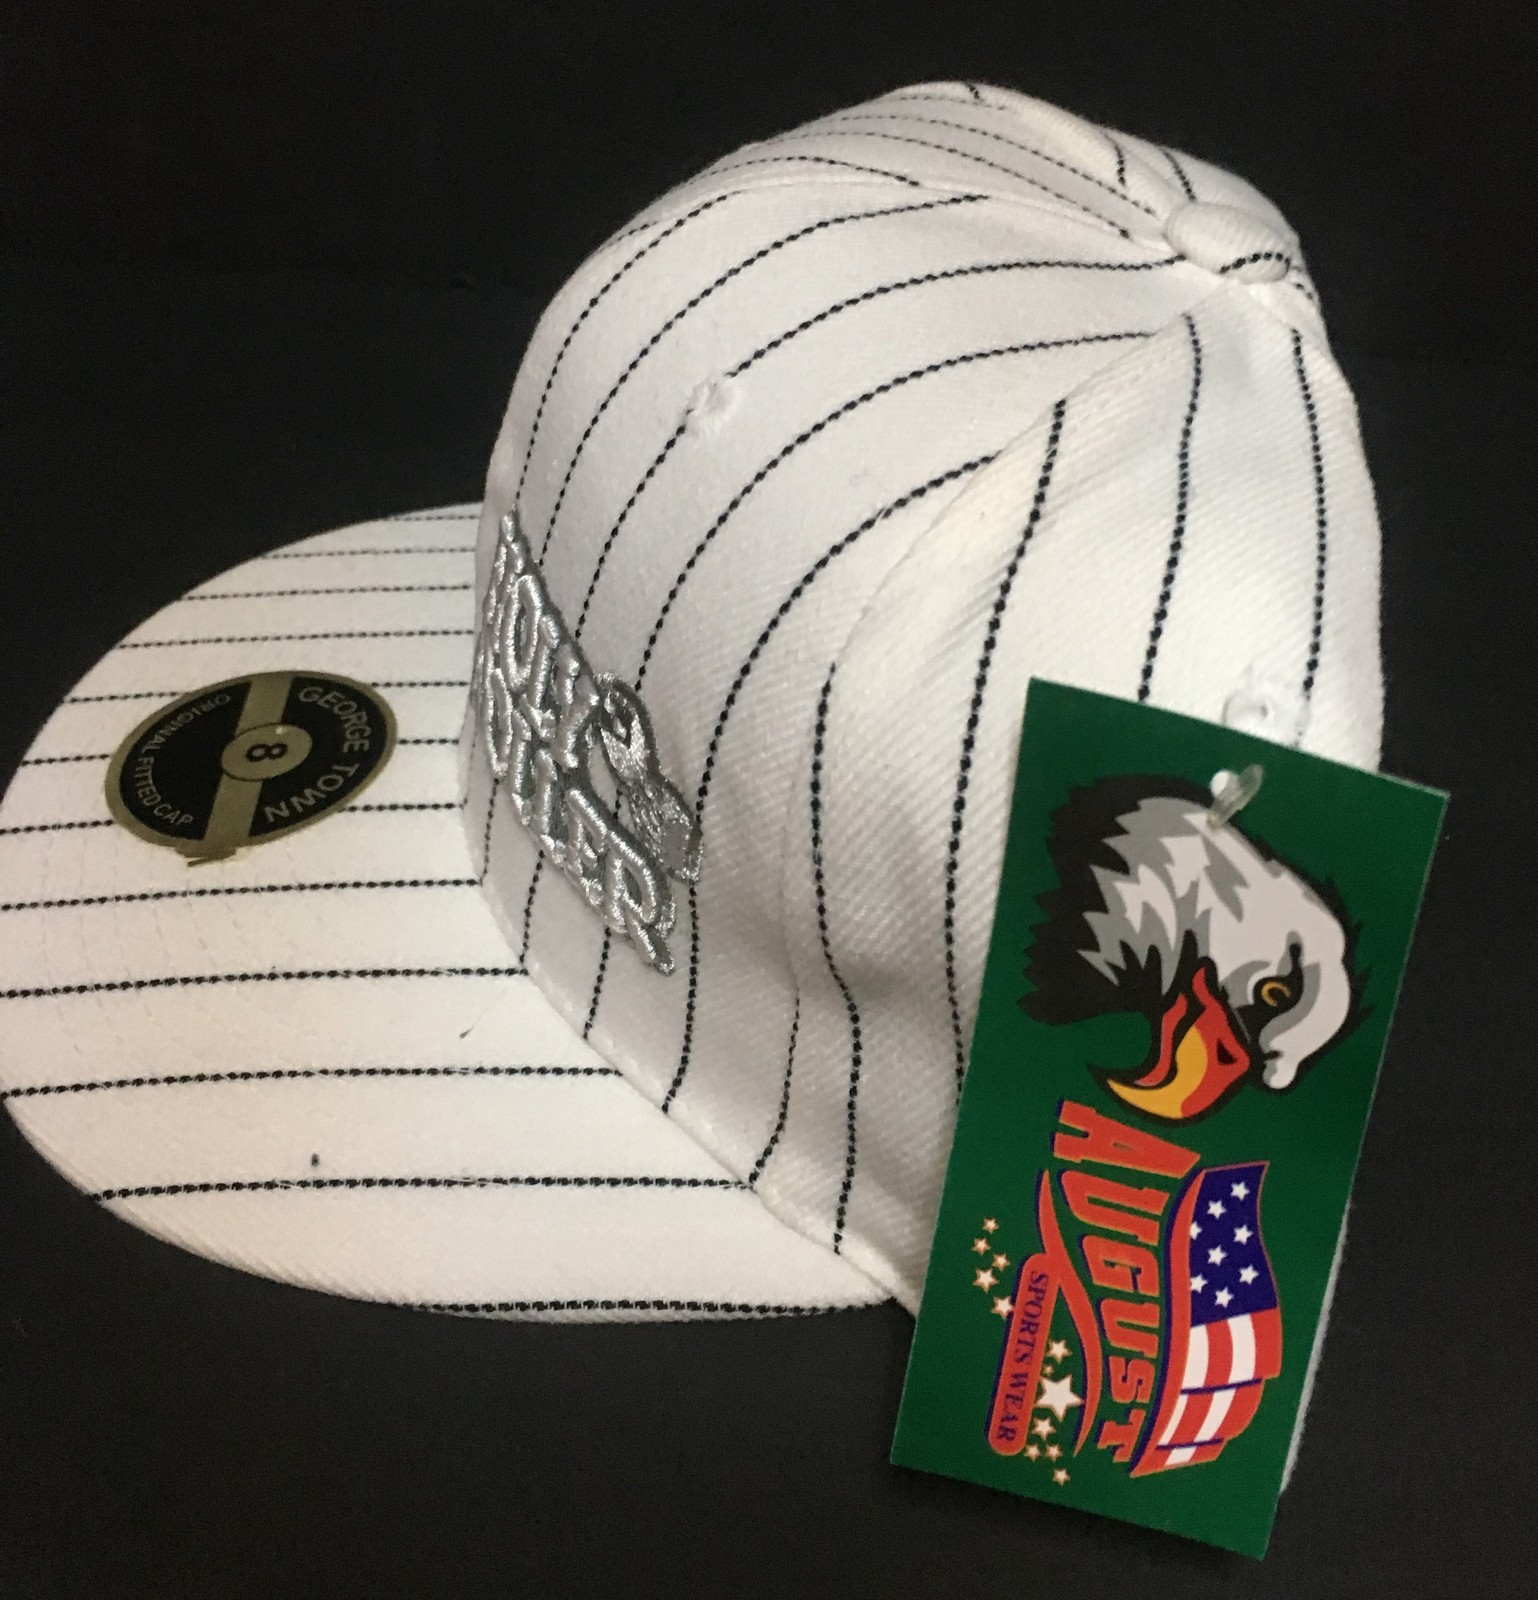 HOLY ROLLER Authentic August Sportswear Hat Sz 8